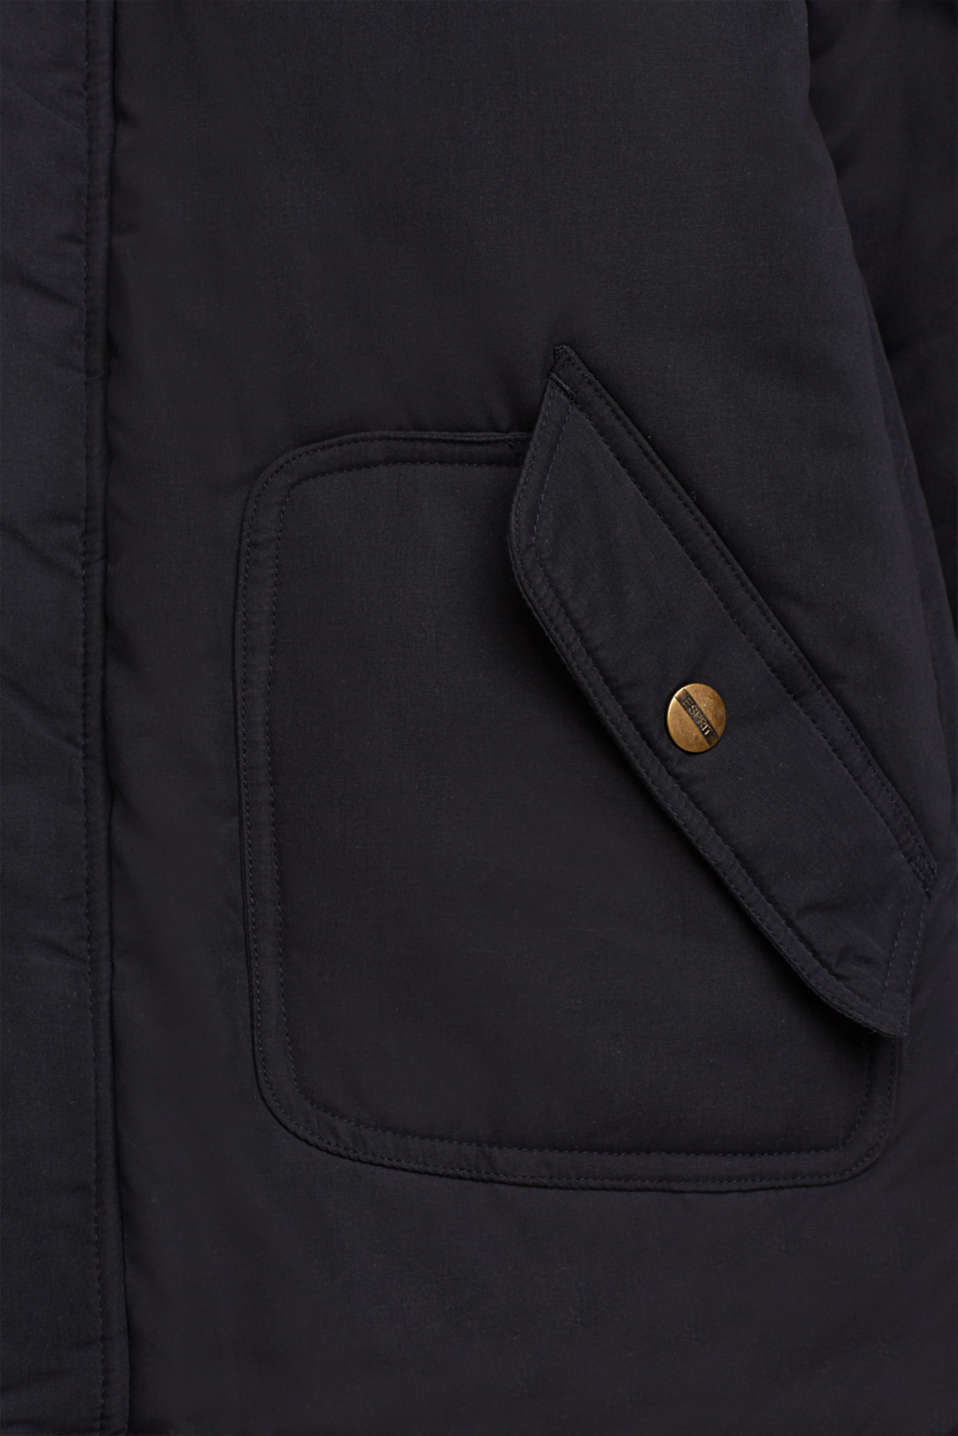 Parka with fleece lining and adjustable hood, LCBLACK, detail image number 2